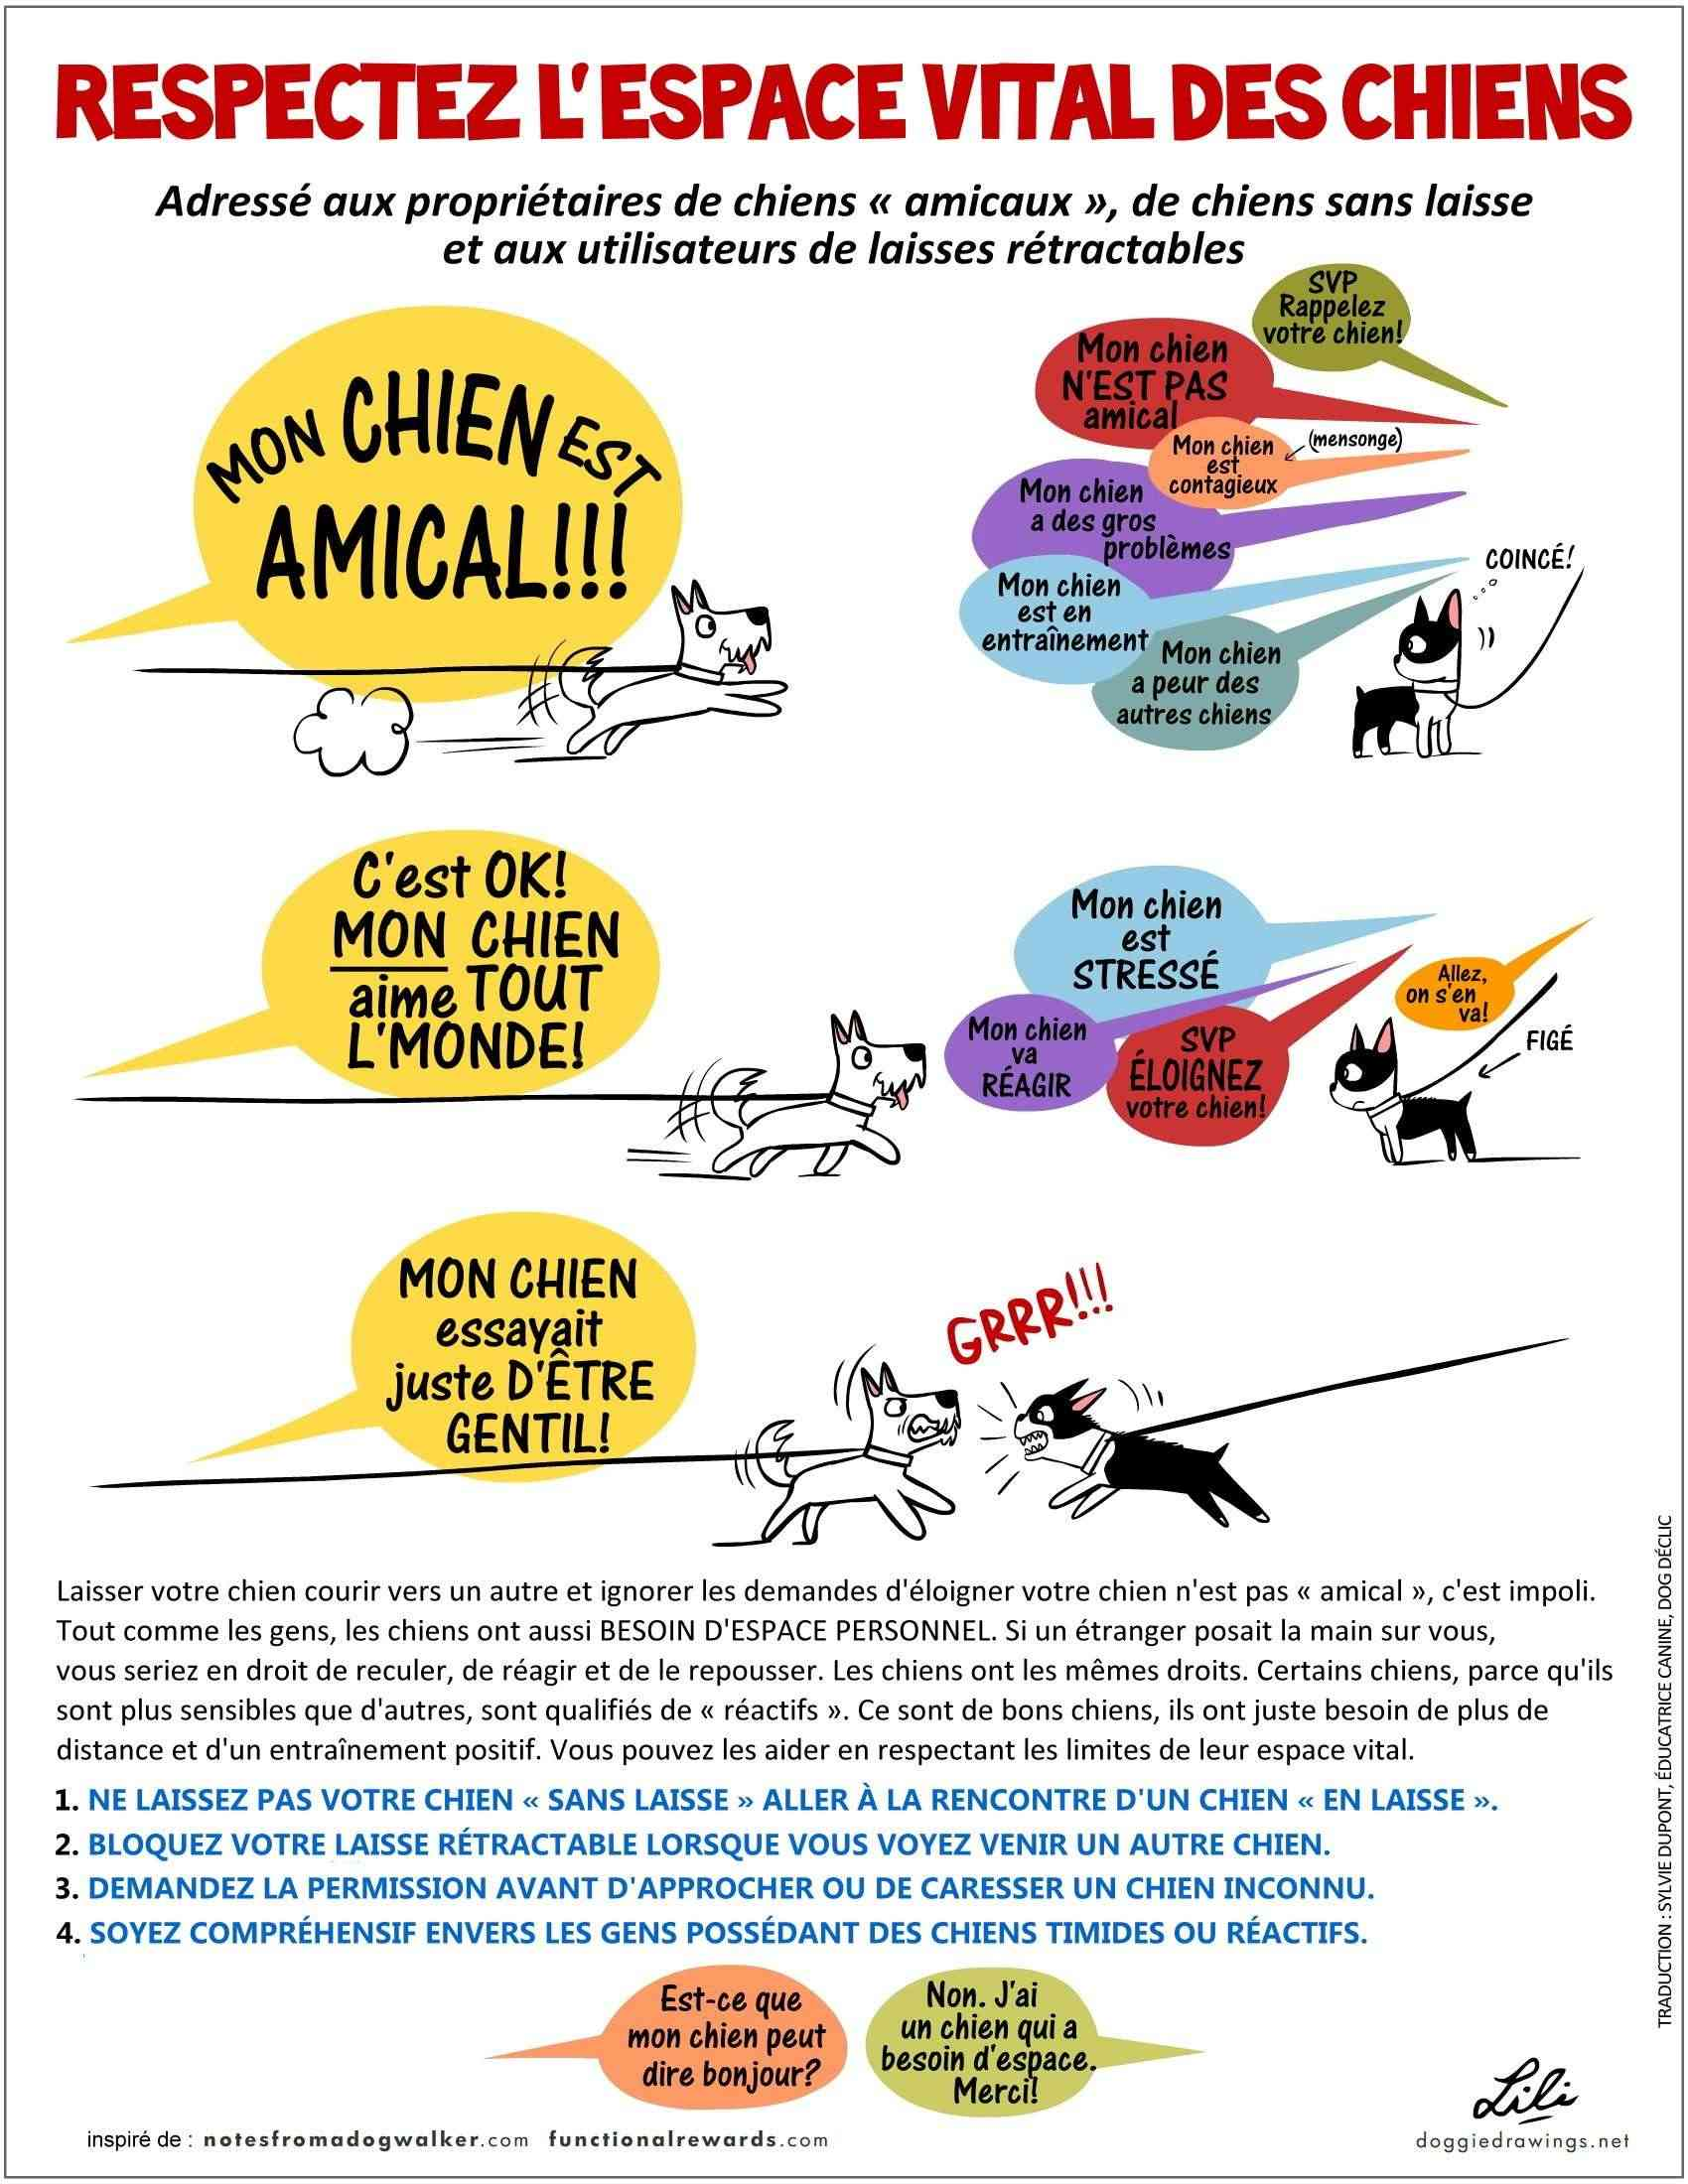 DINOS - Dogs In Need Of Space - Chiens qui ont besoin d'espace Dinos-10